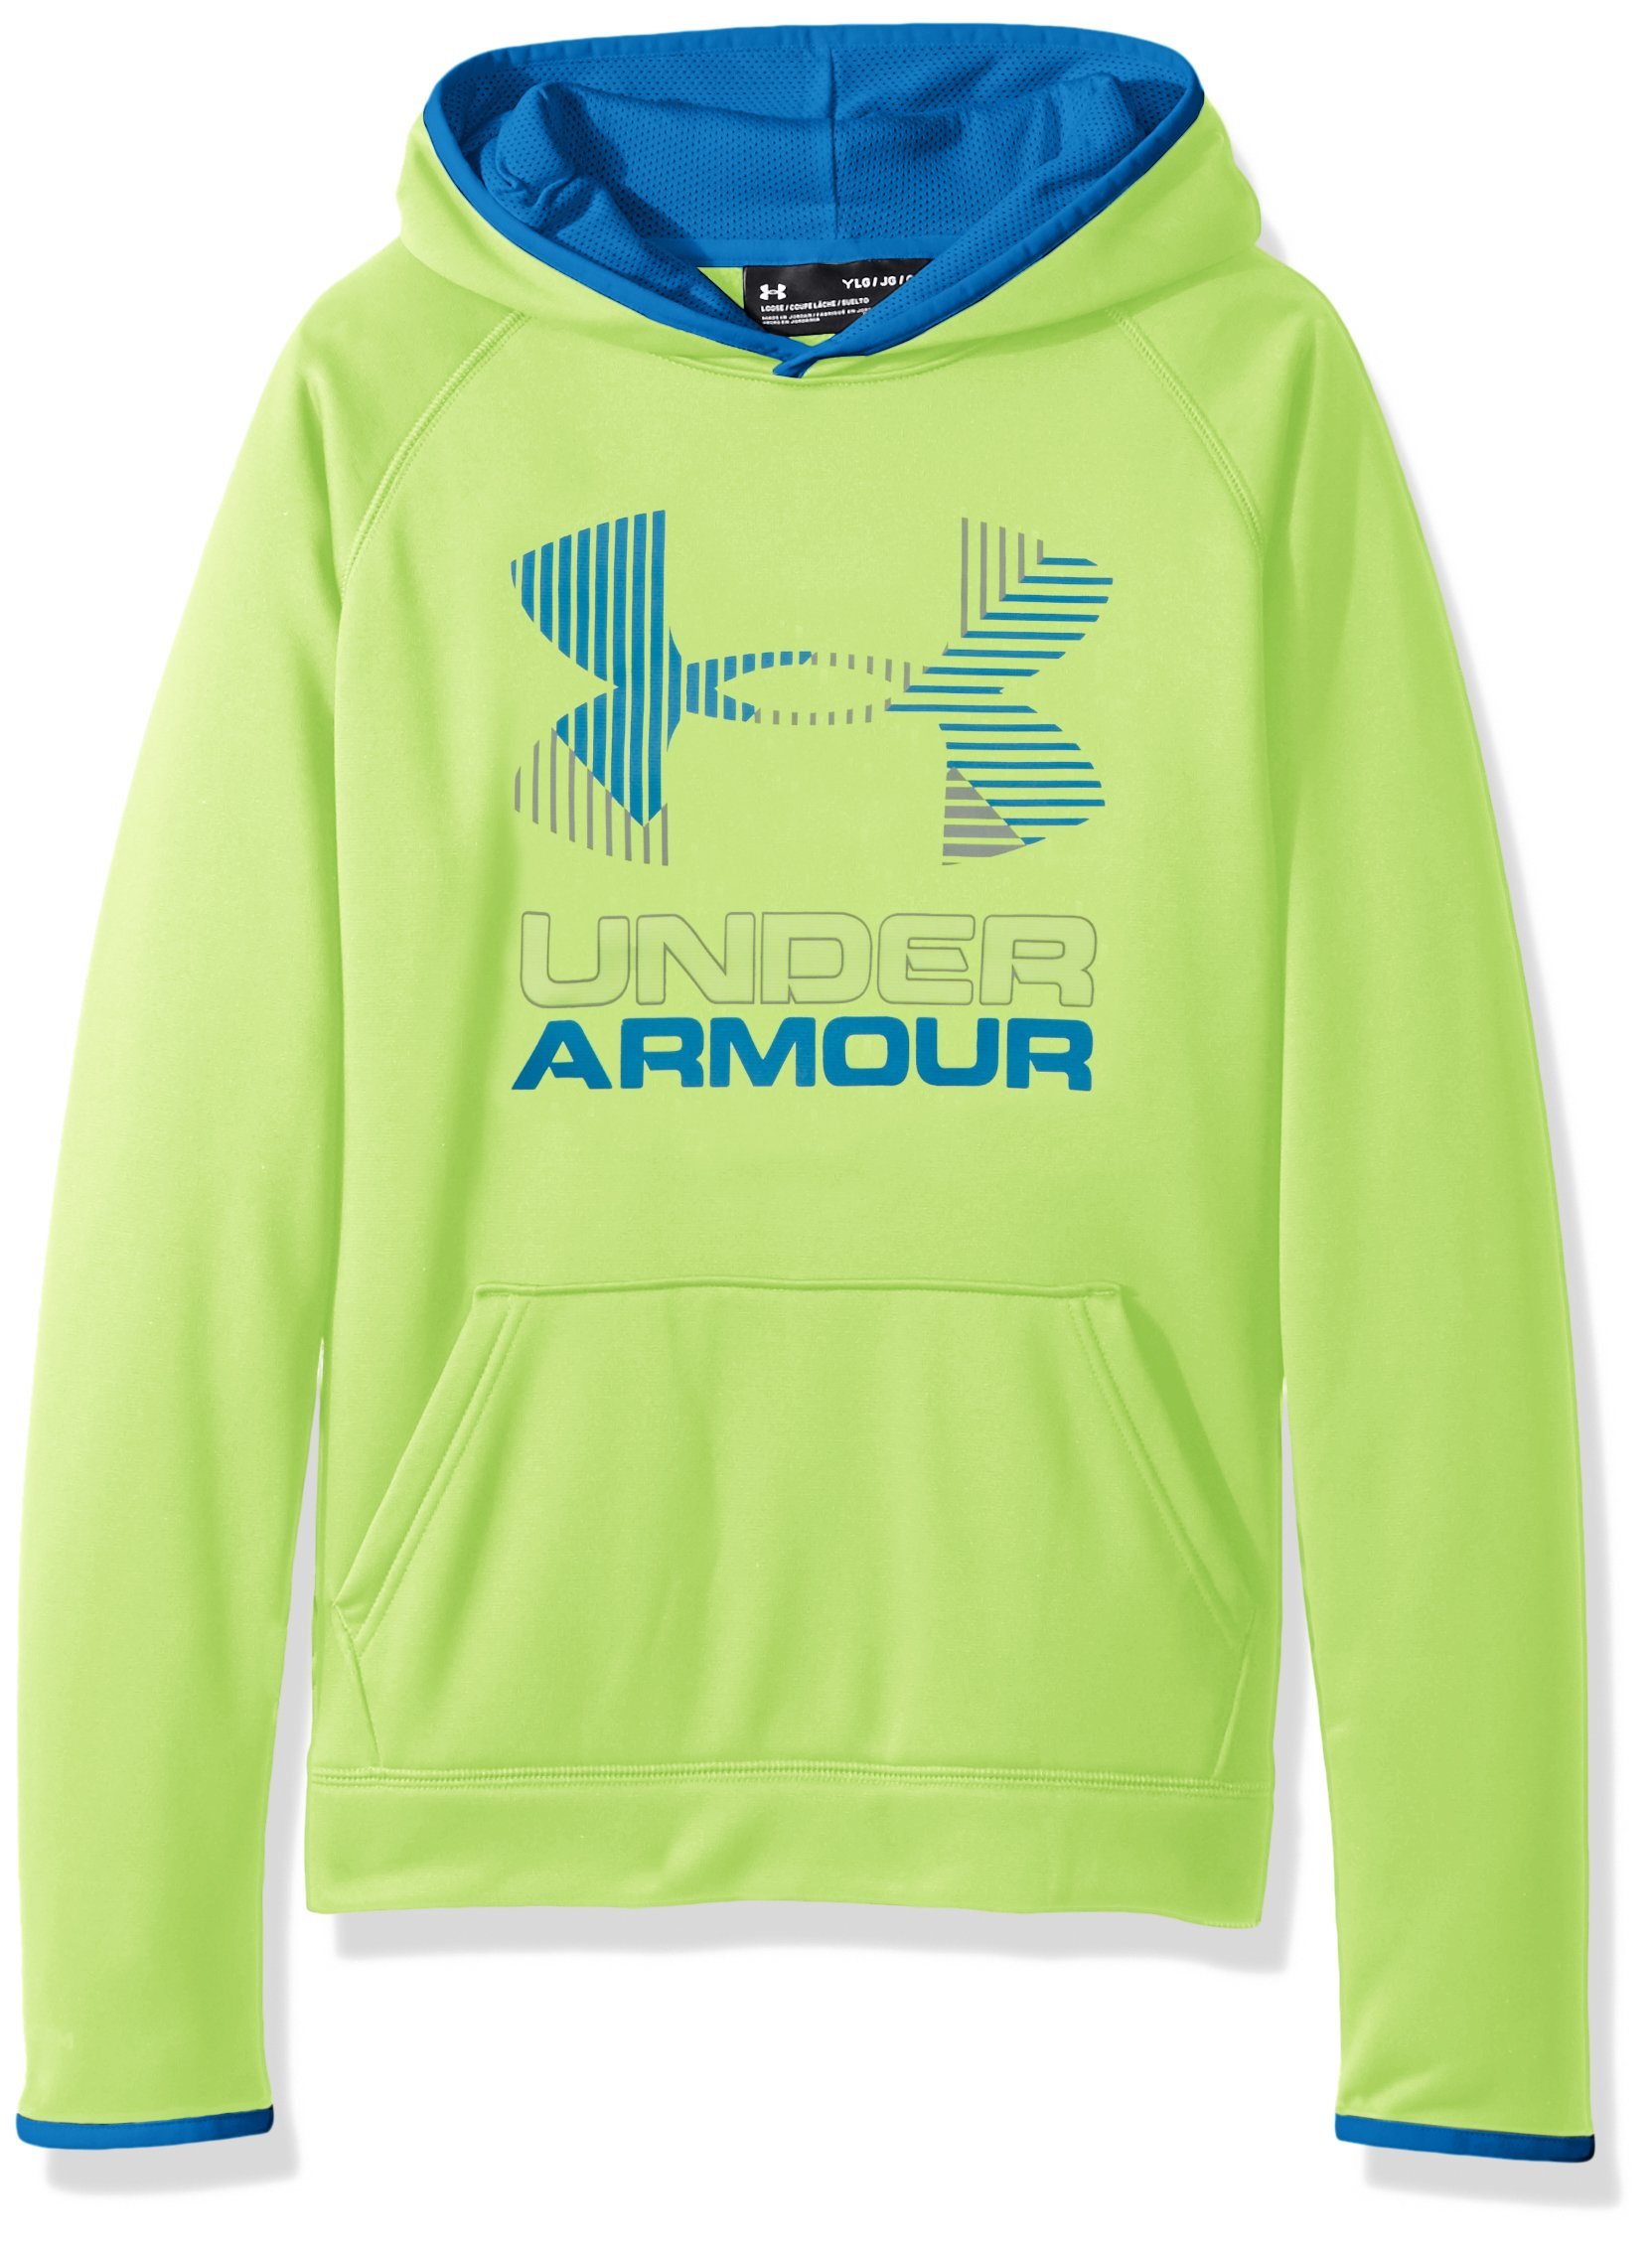 Under Armour Boys' Armour Fleece Solid Big Logo Hoodie, Quirky Lime /Steel, Youth X-Small